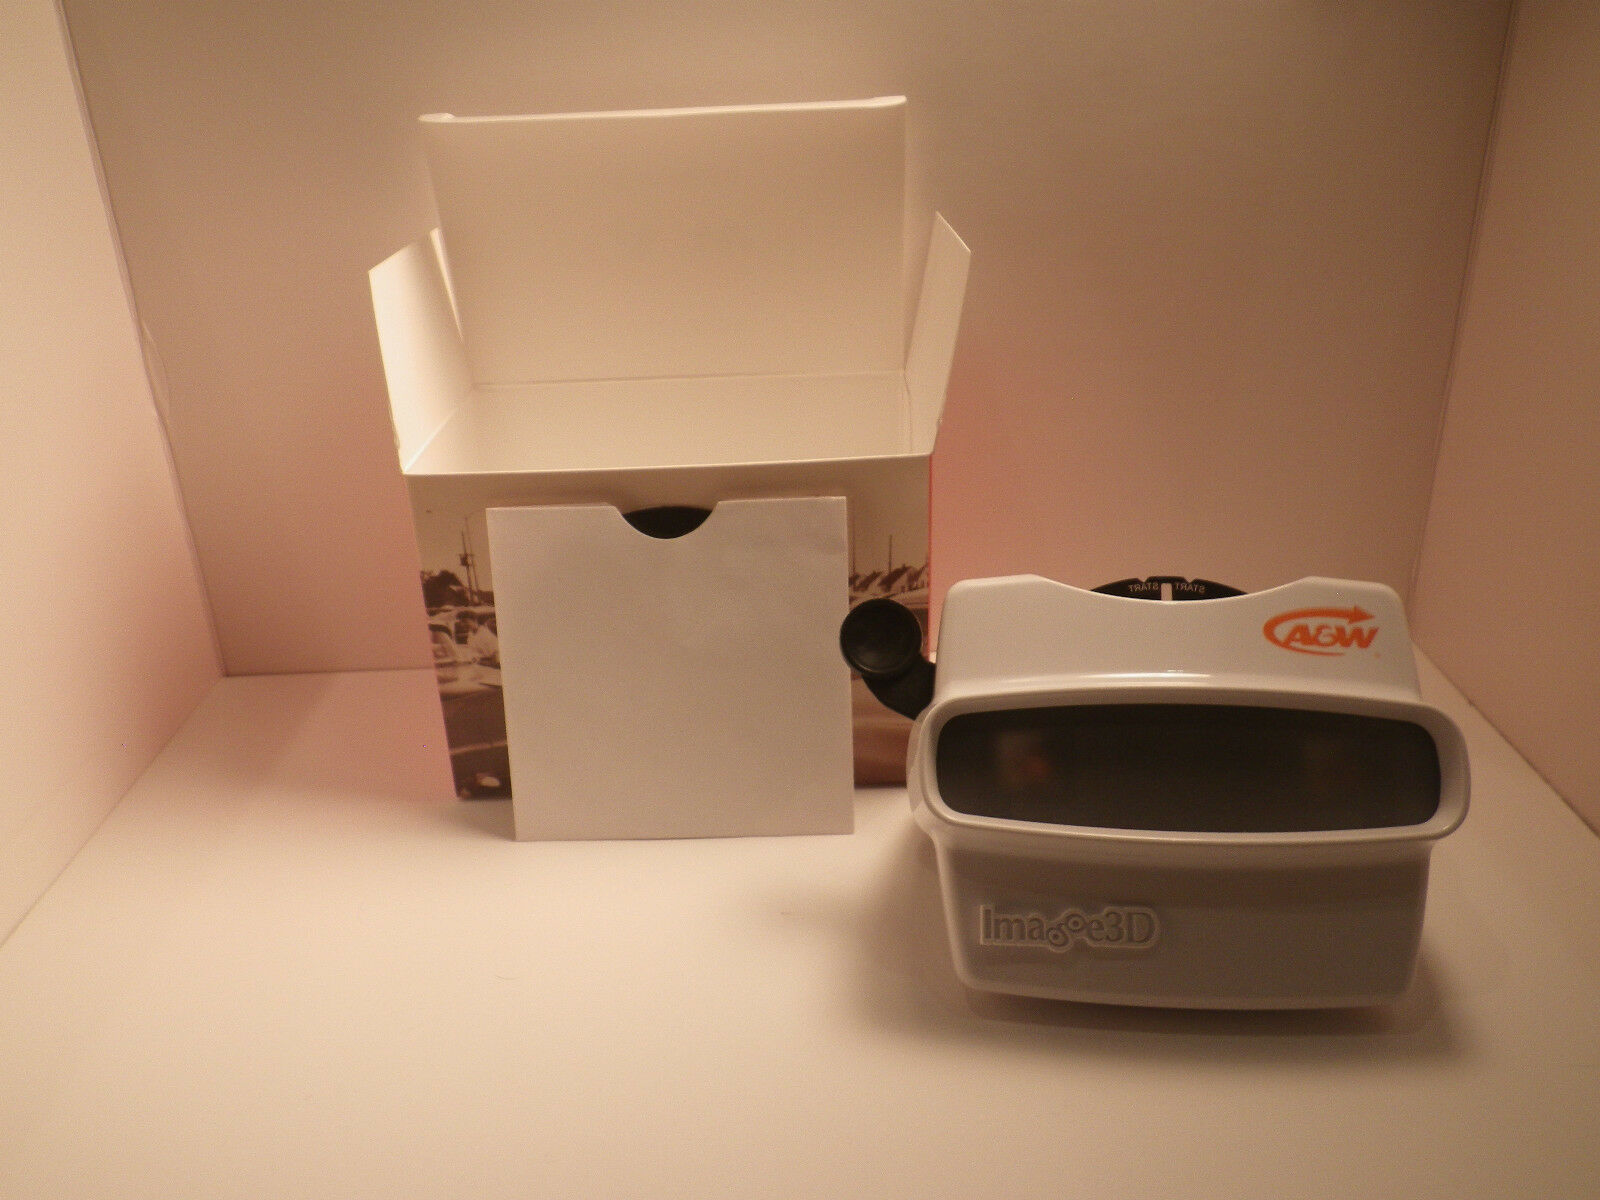 A & W Restaurant View-Master View-Master View-Master BRAND NEW With 2 Classic A & W Promotional REELS 9bcbee